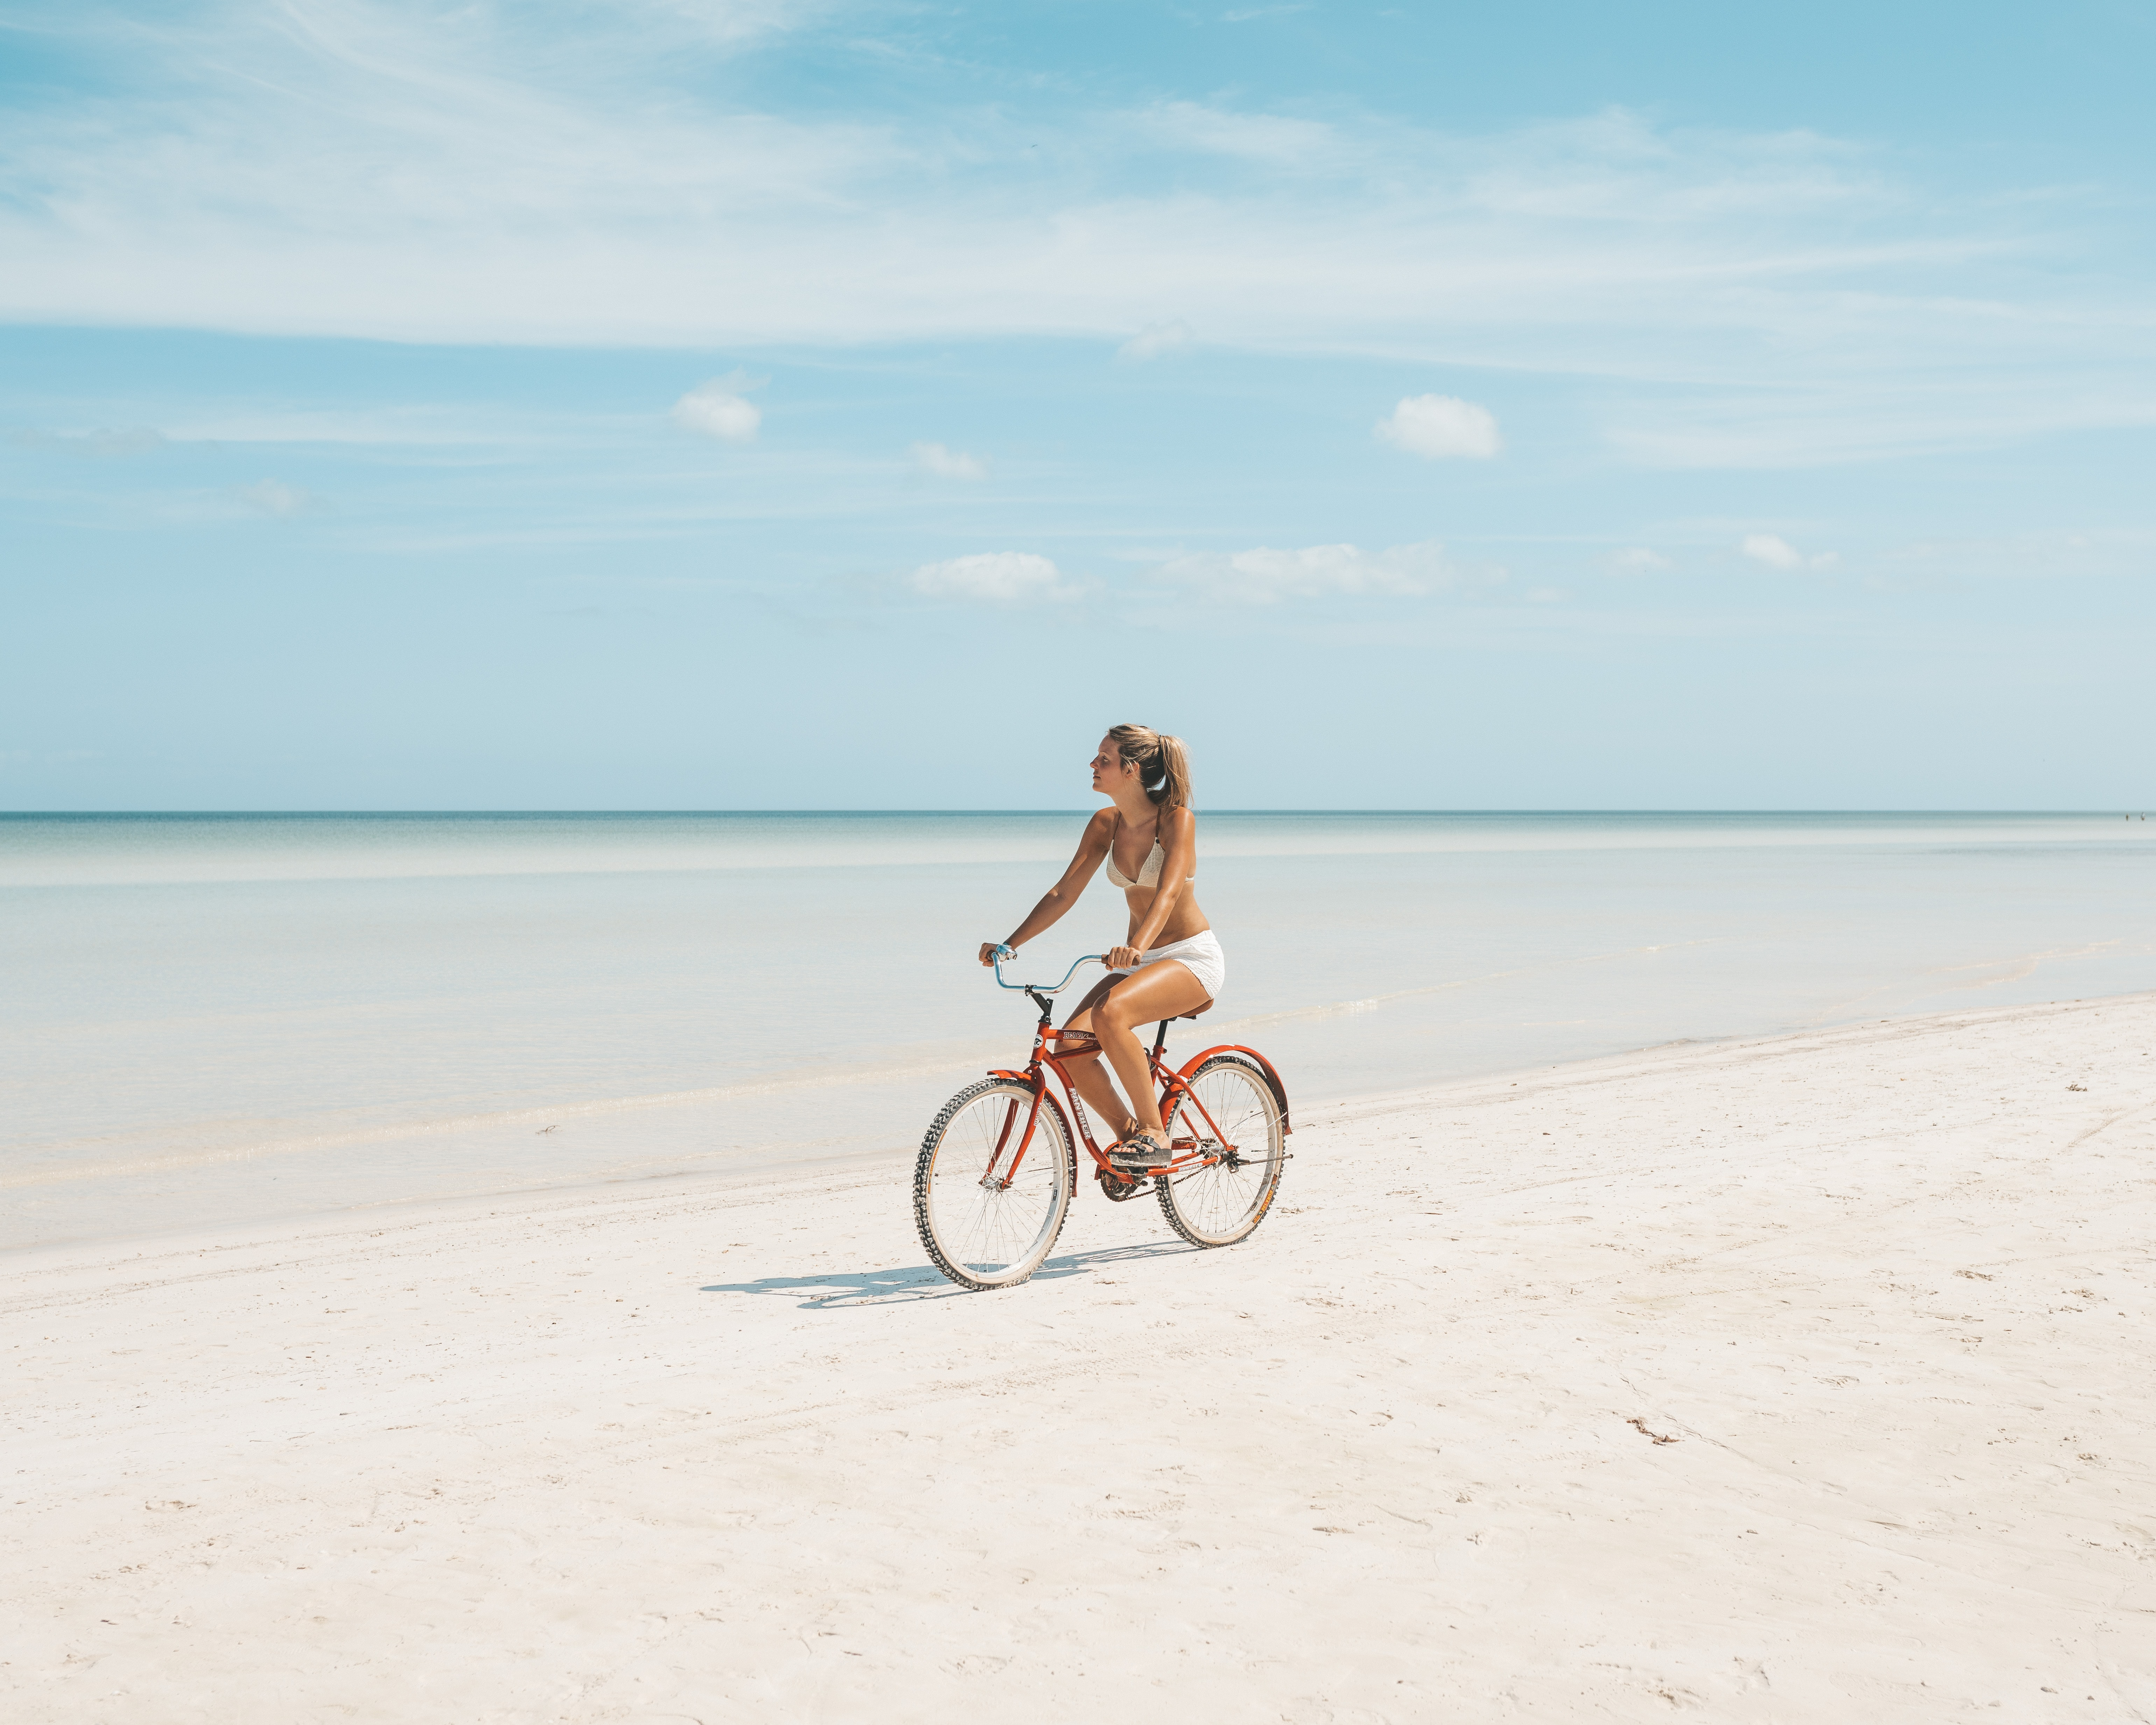 woman riding on bicycle near seashore during daytime